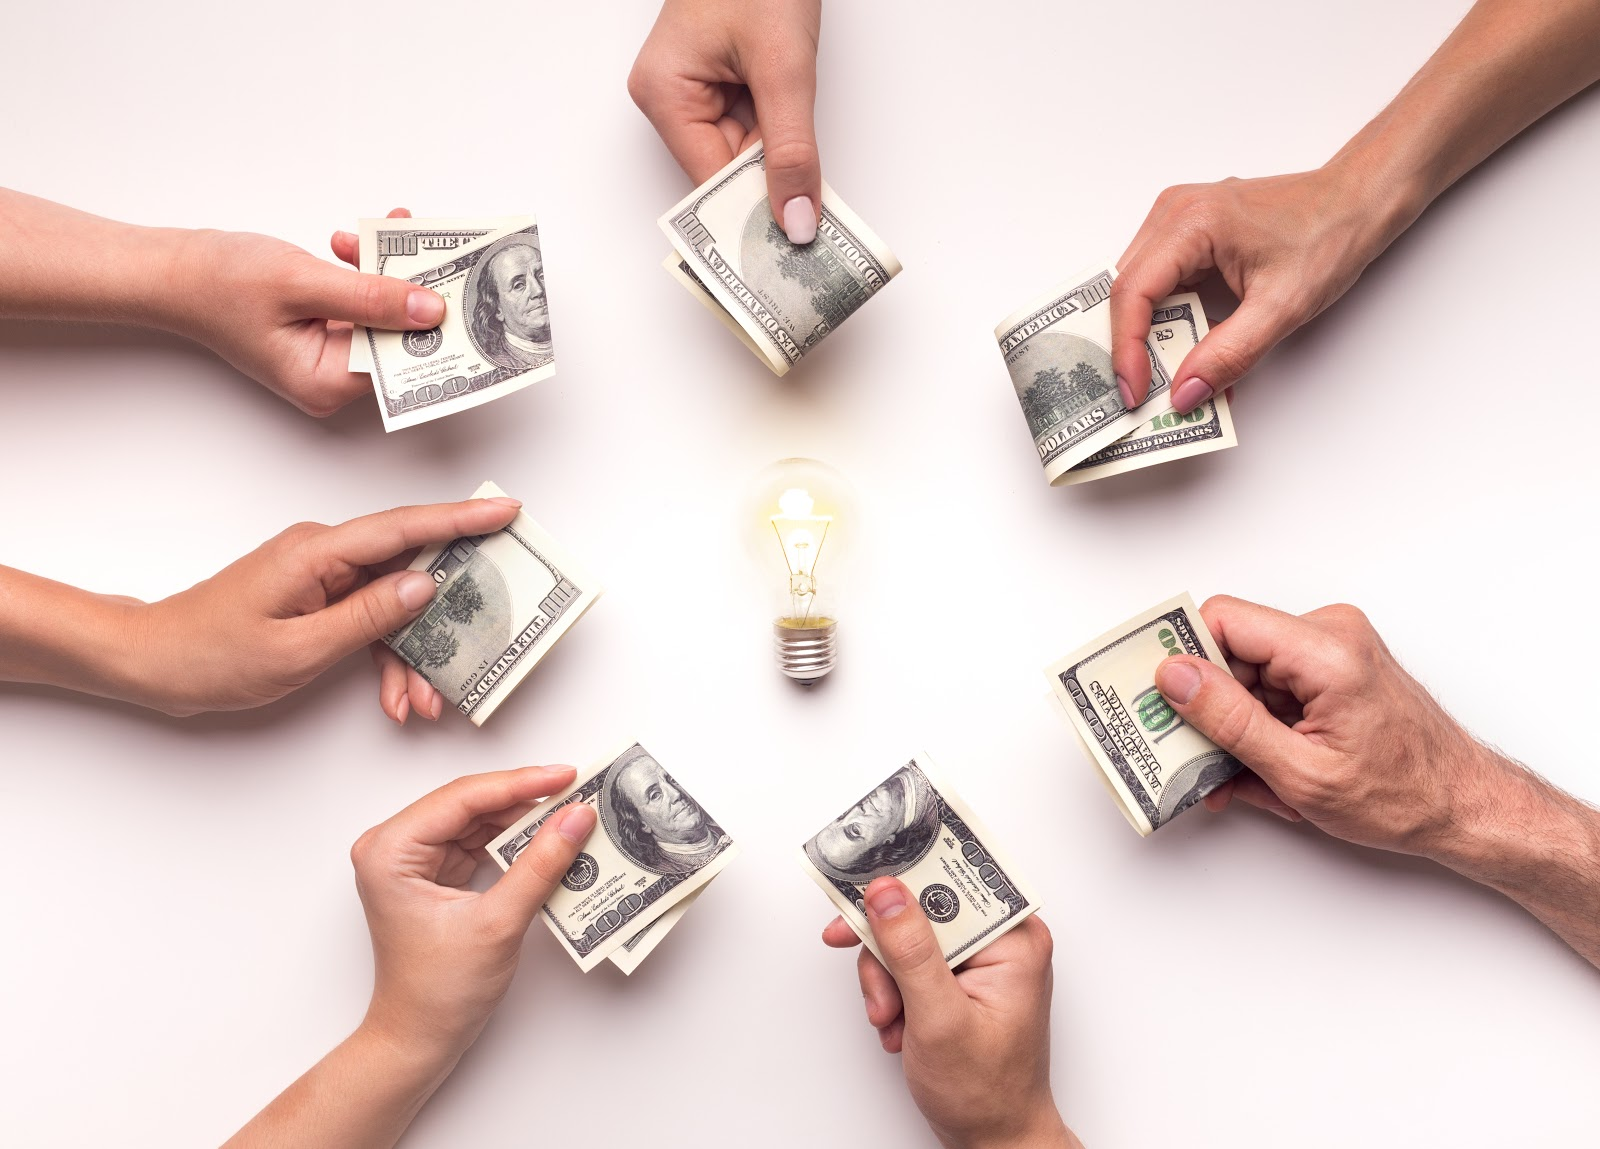 How often are dividends paid: Hands hold money in a circle around a light bulb